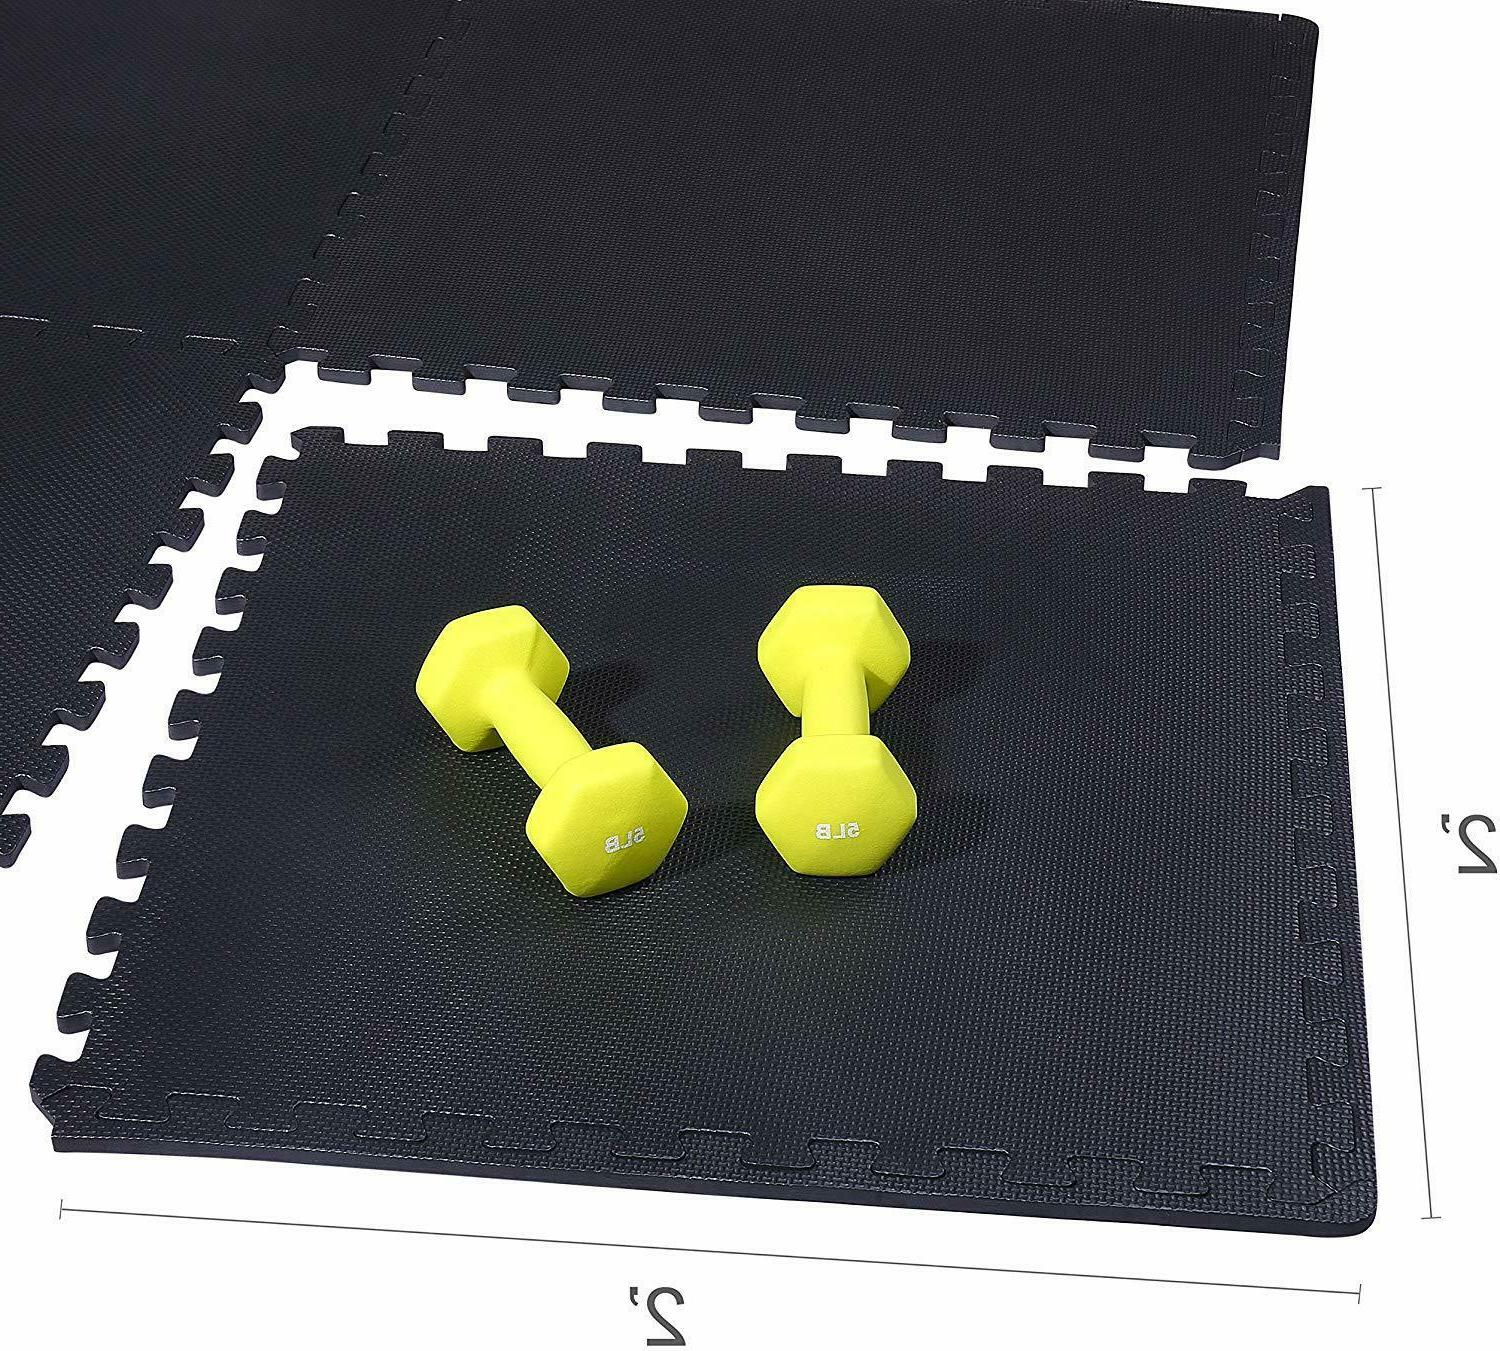 GYM Garage Home Fitness Exercise 24 Mat